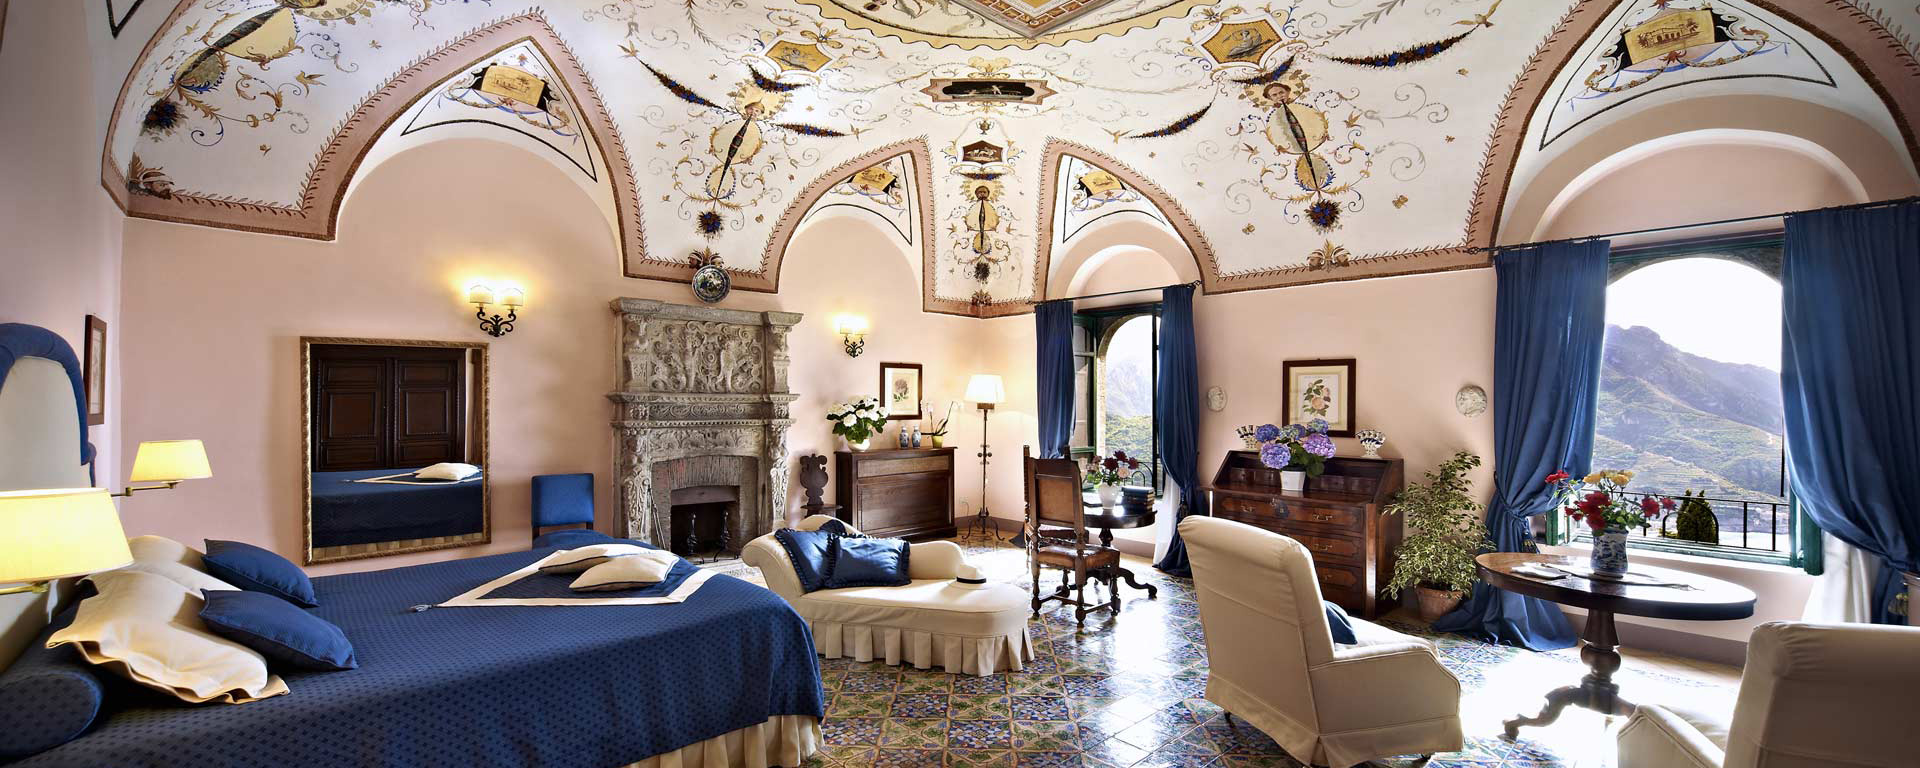 Small luxury hotels and boutique hotels in essaouira for Boutique hotels italy